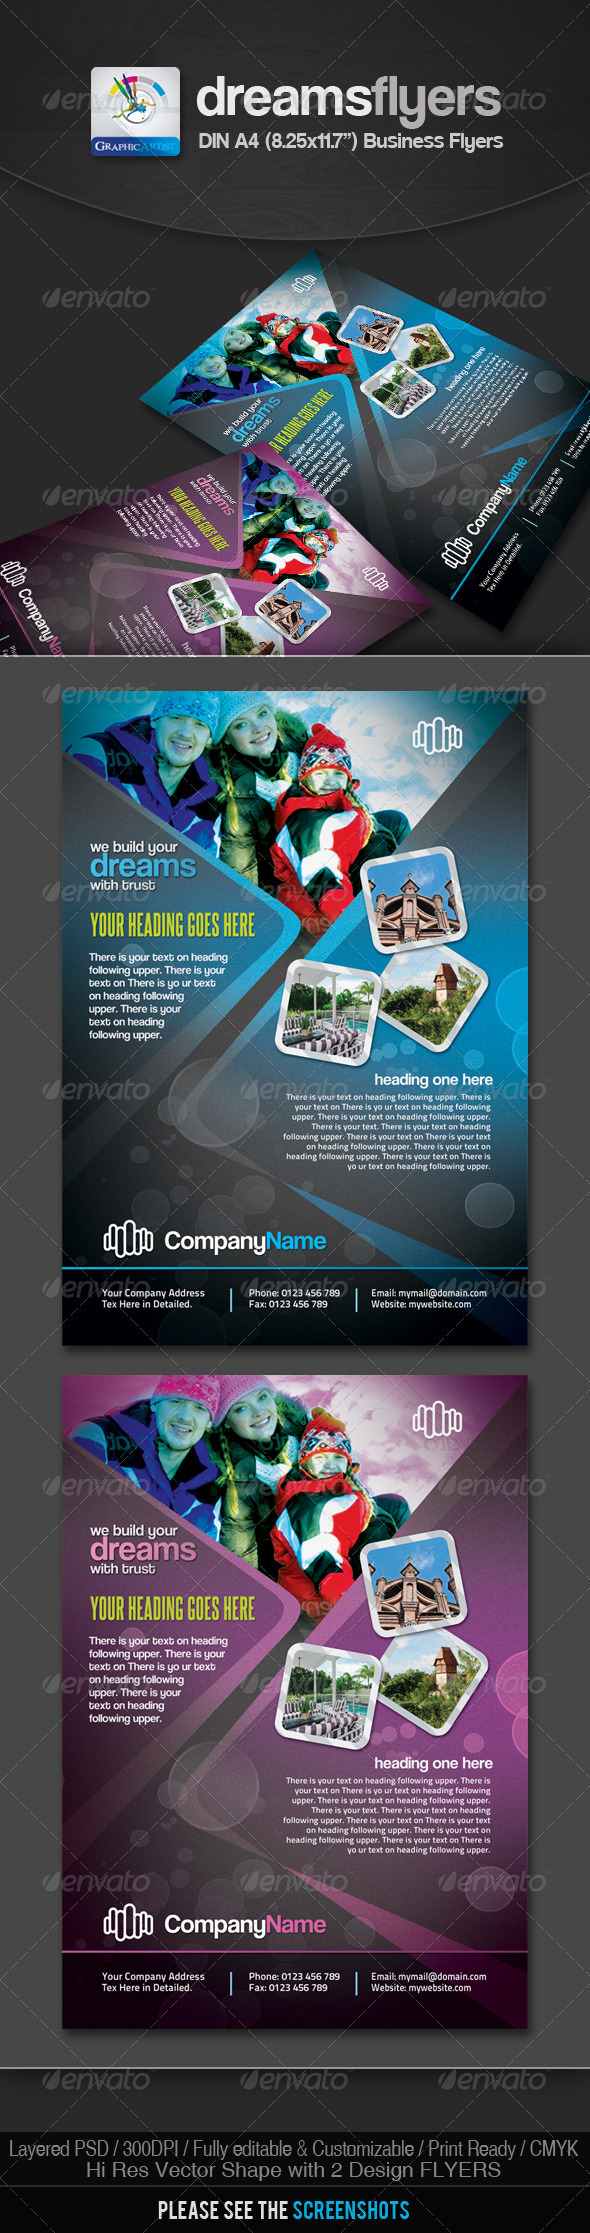 Dreams Multipurpose Business Flyers - Corporate Flyers